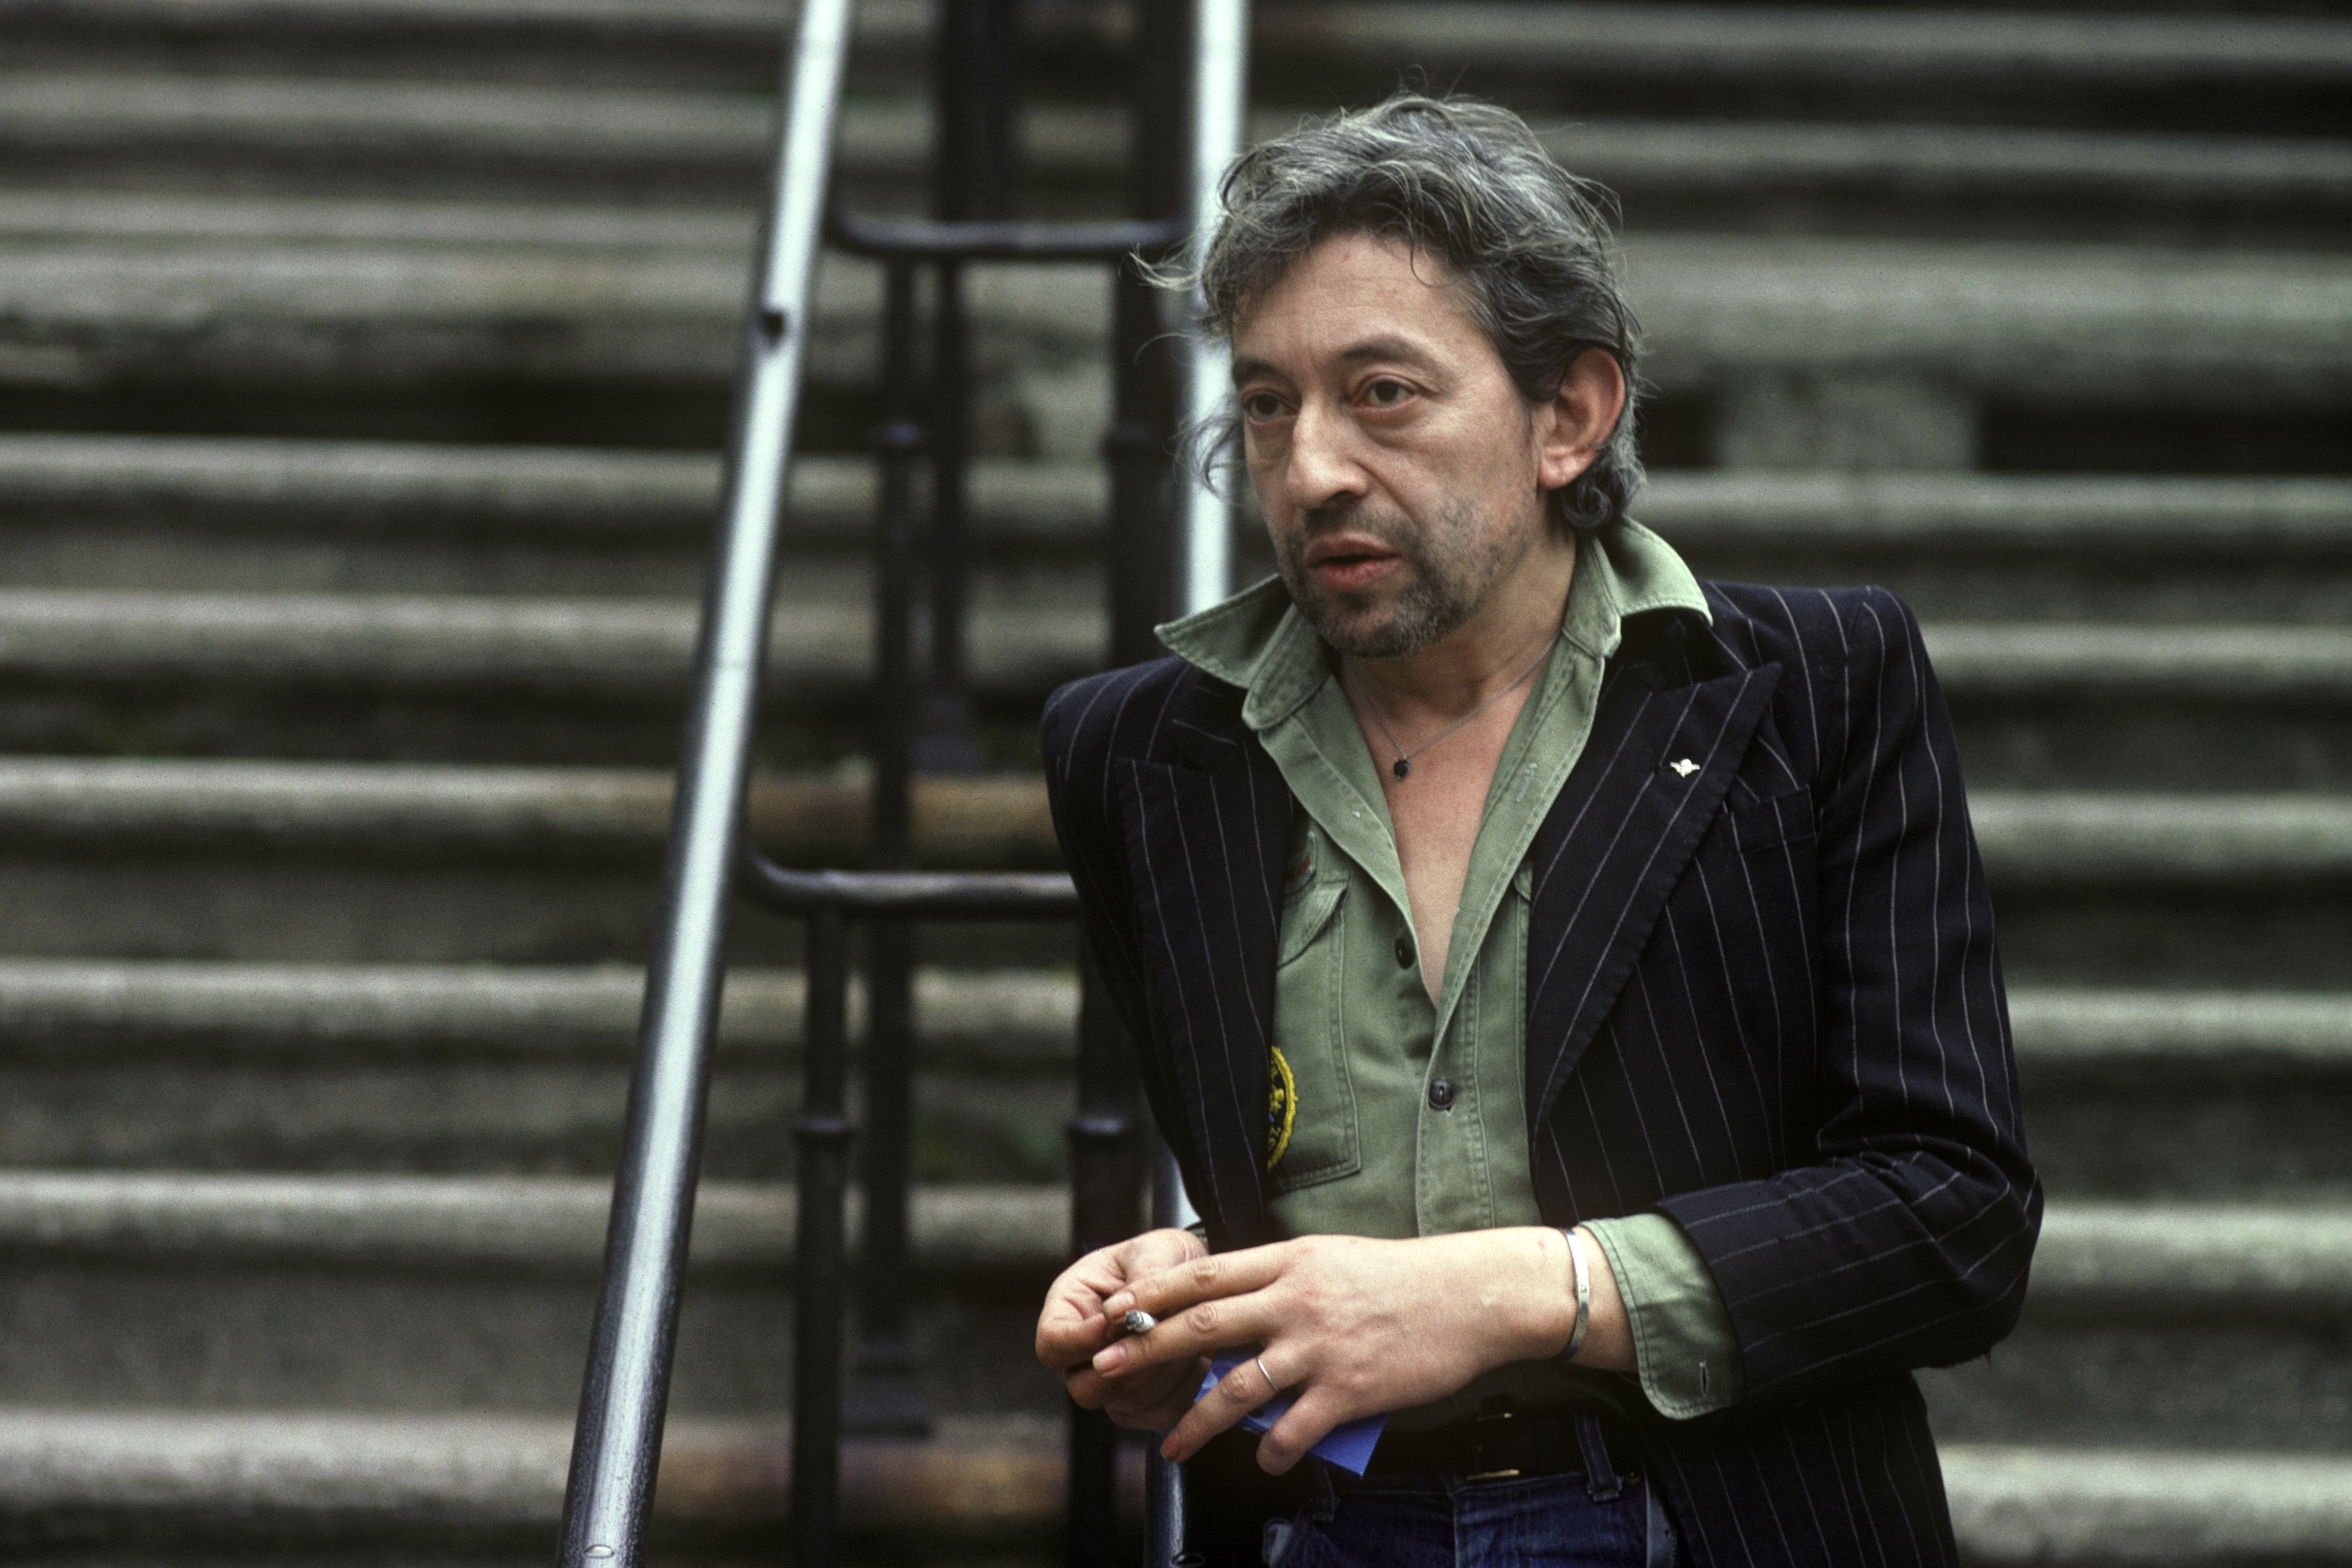 Serge Gainsbourg   photo : Getty Images